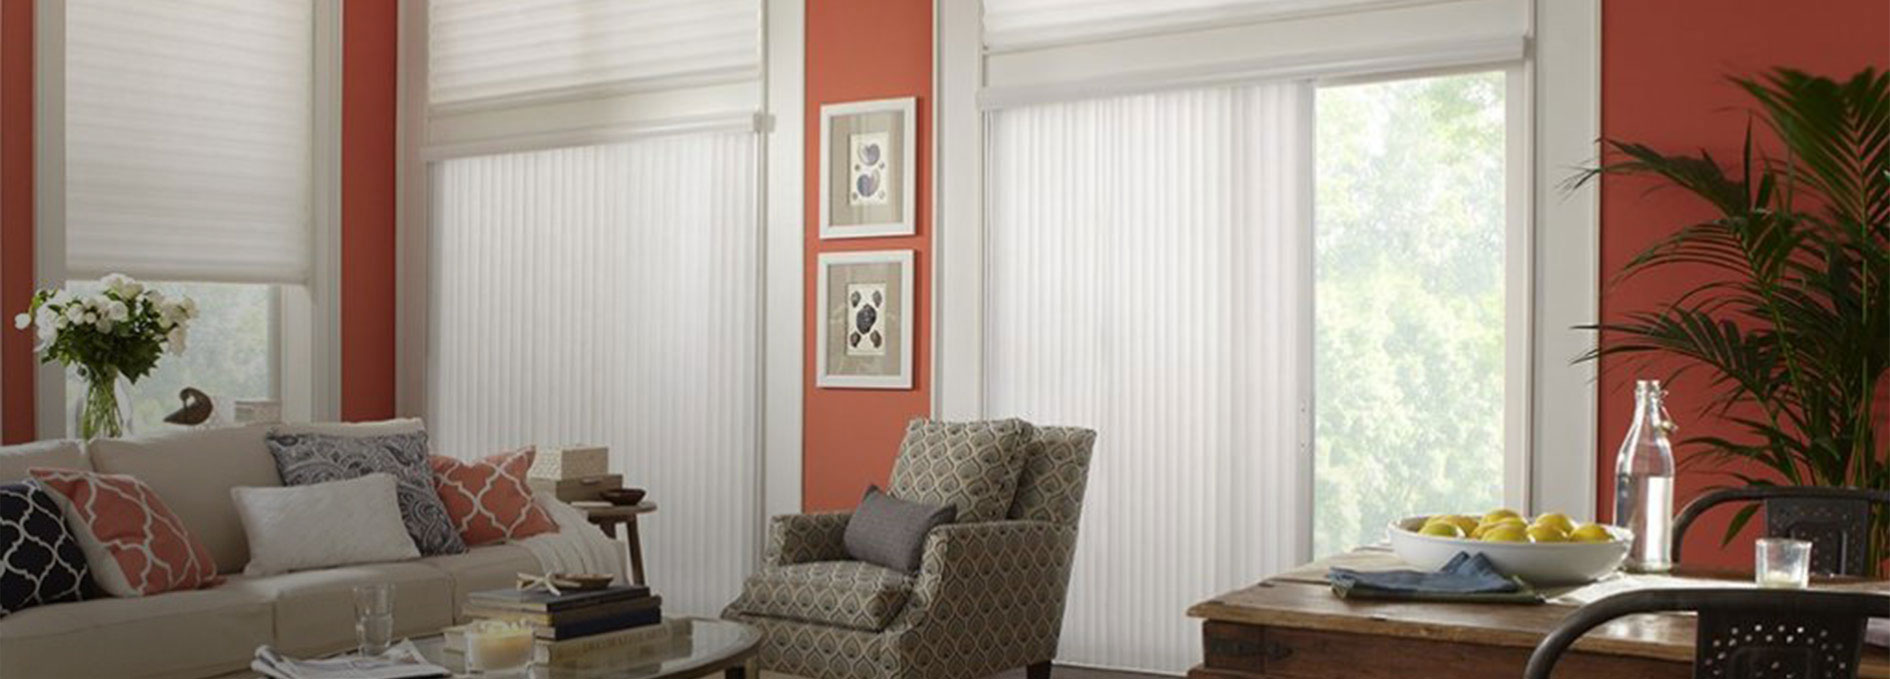 tilt wood divider casing co rail stained gallery upgraded with and blinds summit alta hidden edited shutter